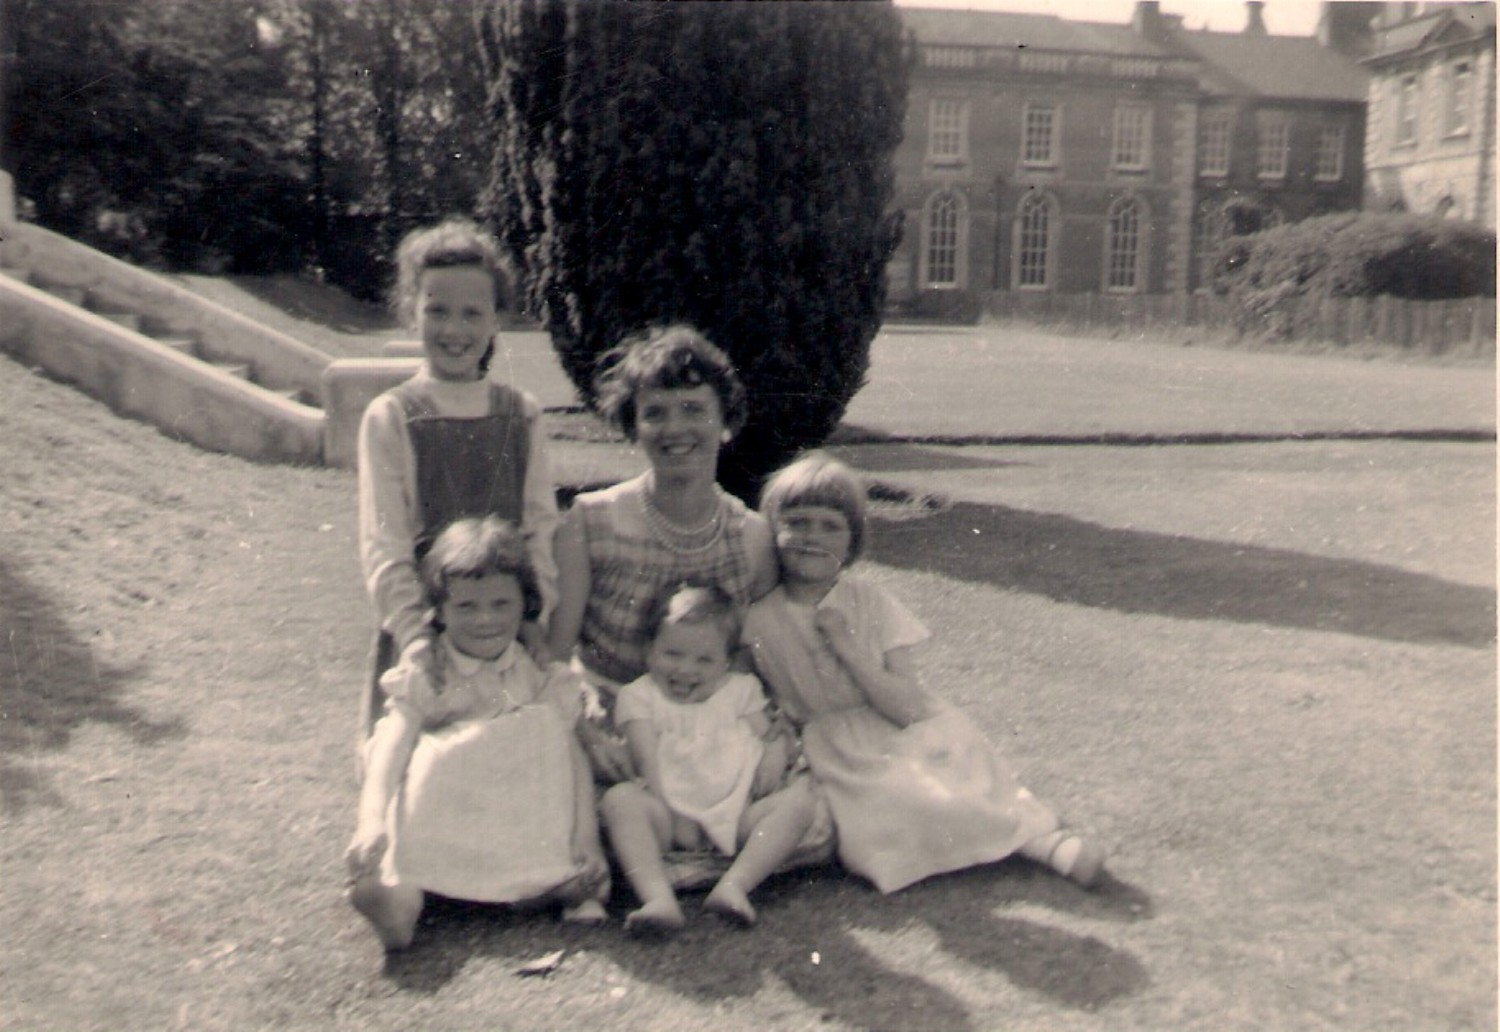 The Campbell family on the steps to the open air pool with Marbury Hall in the background. This picture was taken in 1960.